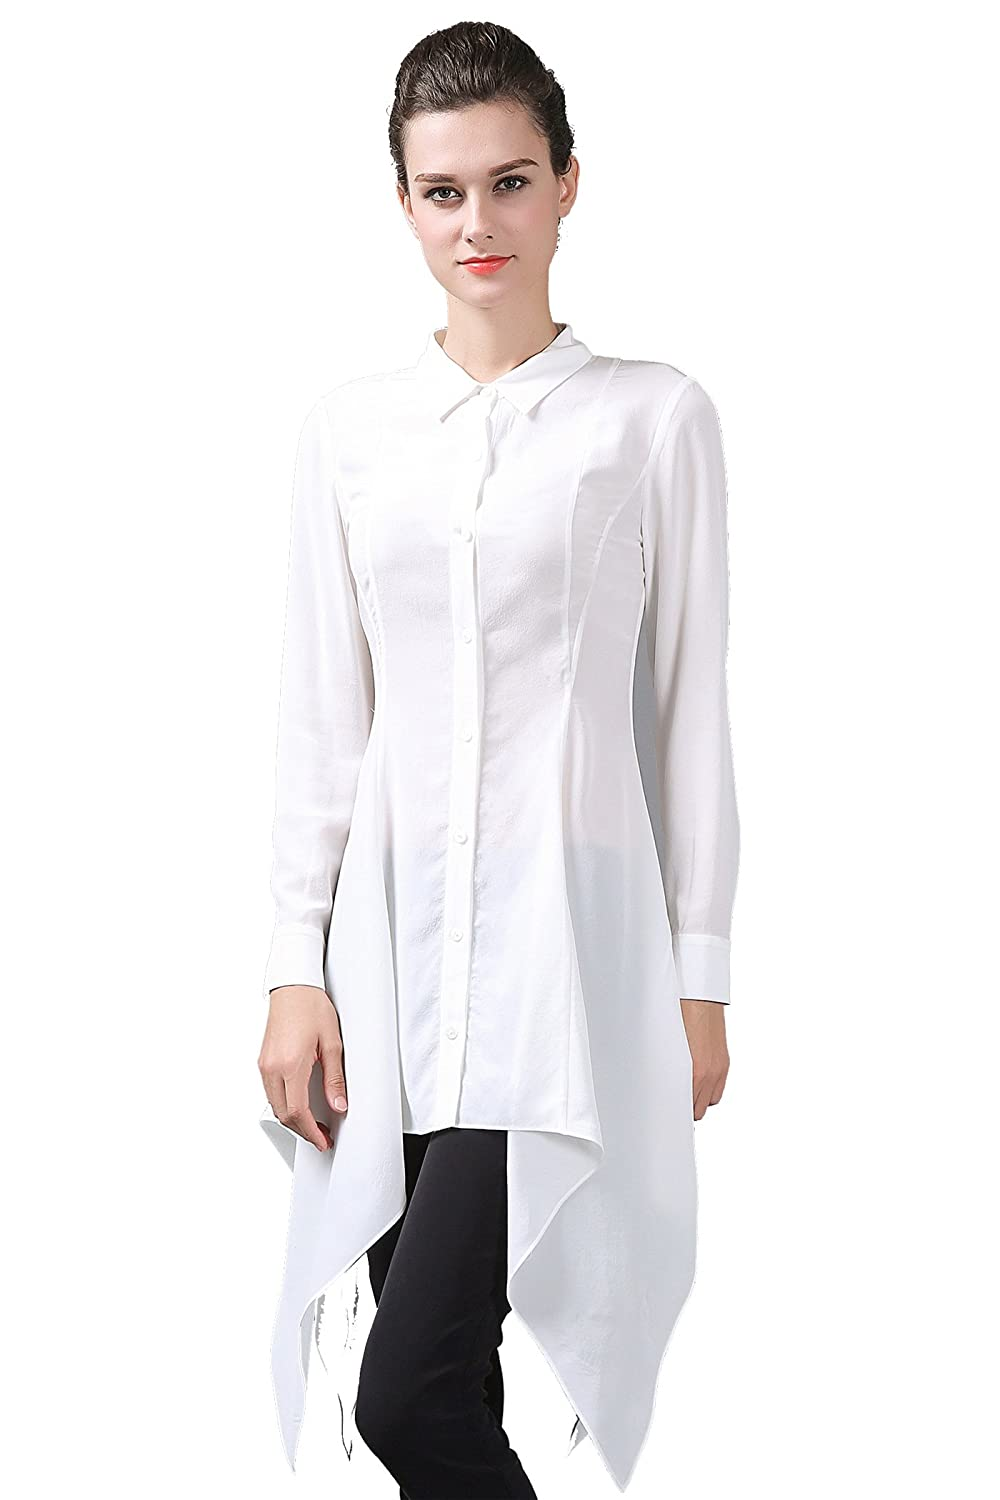 VOA Women's Silk Slim Fit White Long Sleeve Shirt Top Blouse